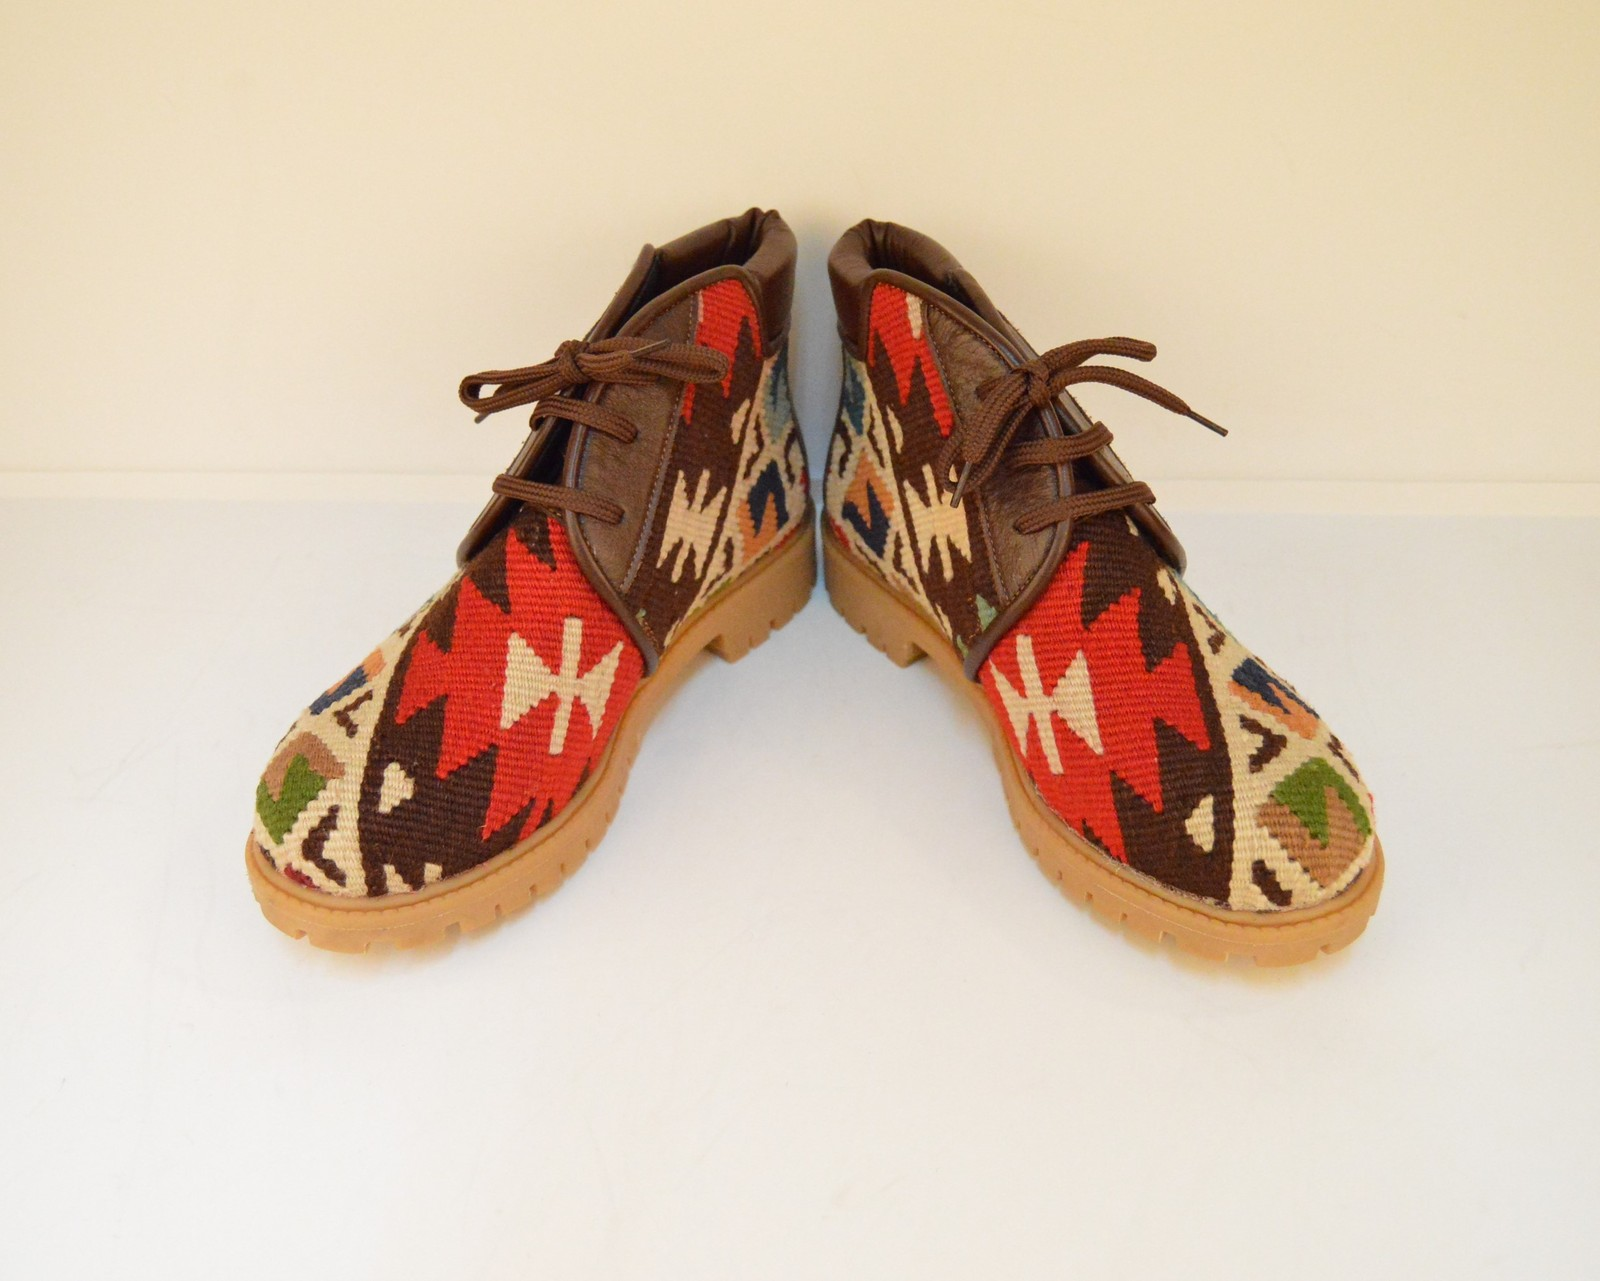 Primary image for kilim boots,rug bosts, Leather boots,boots,men's boots,Ankle Boots,wool boots